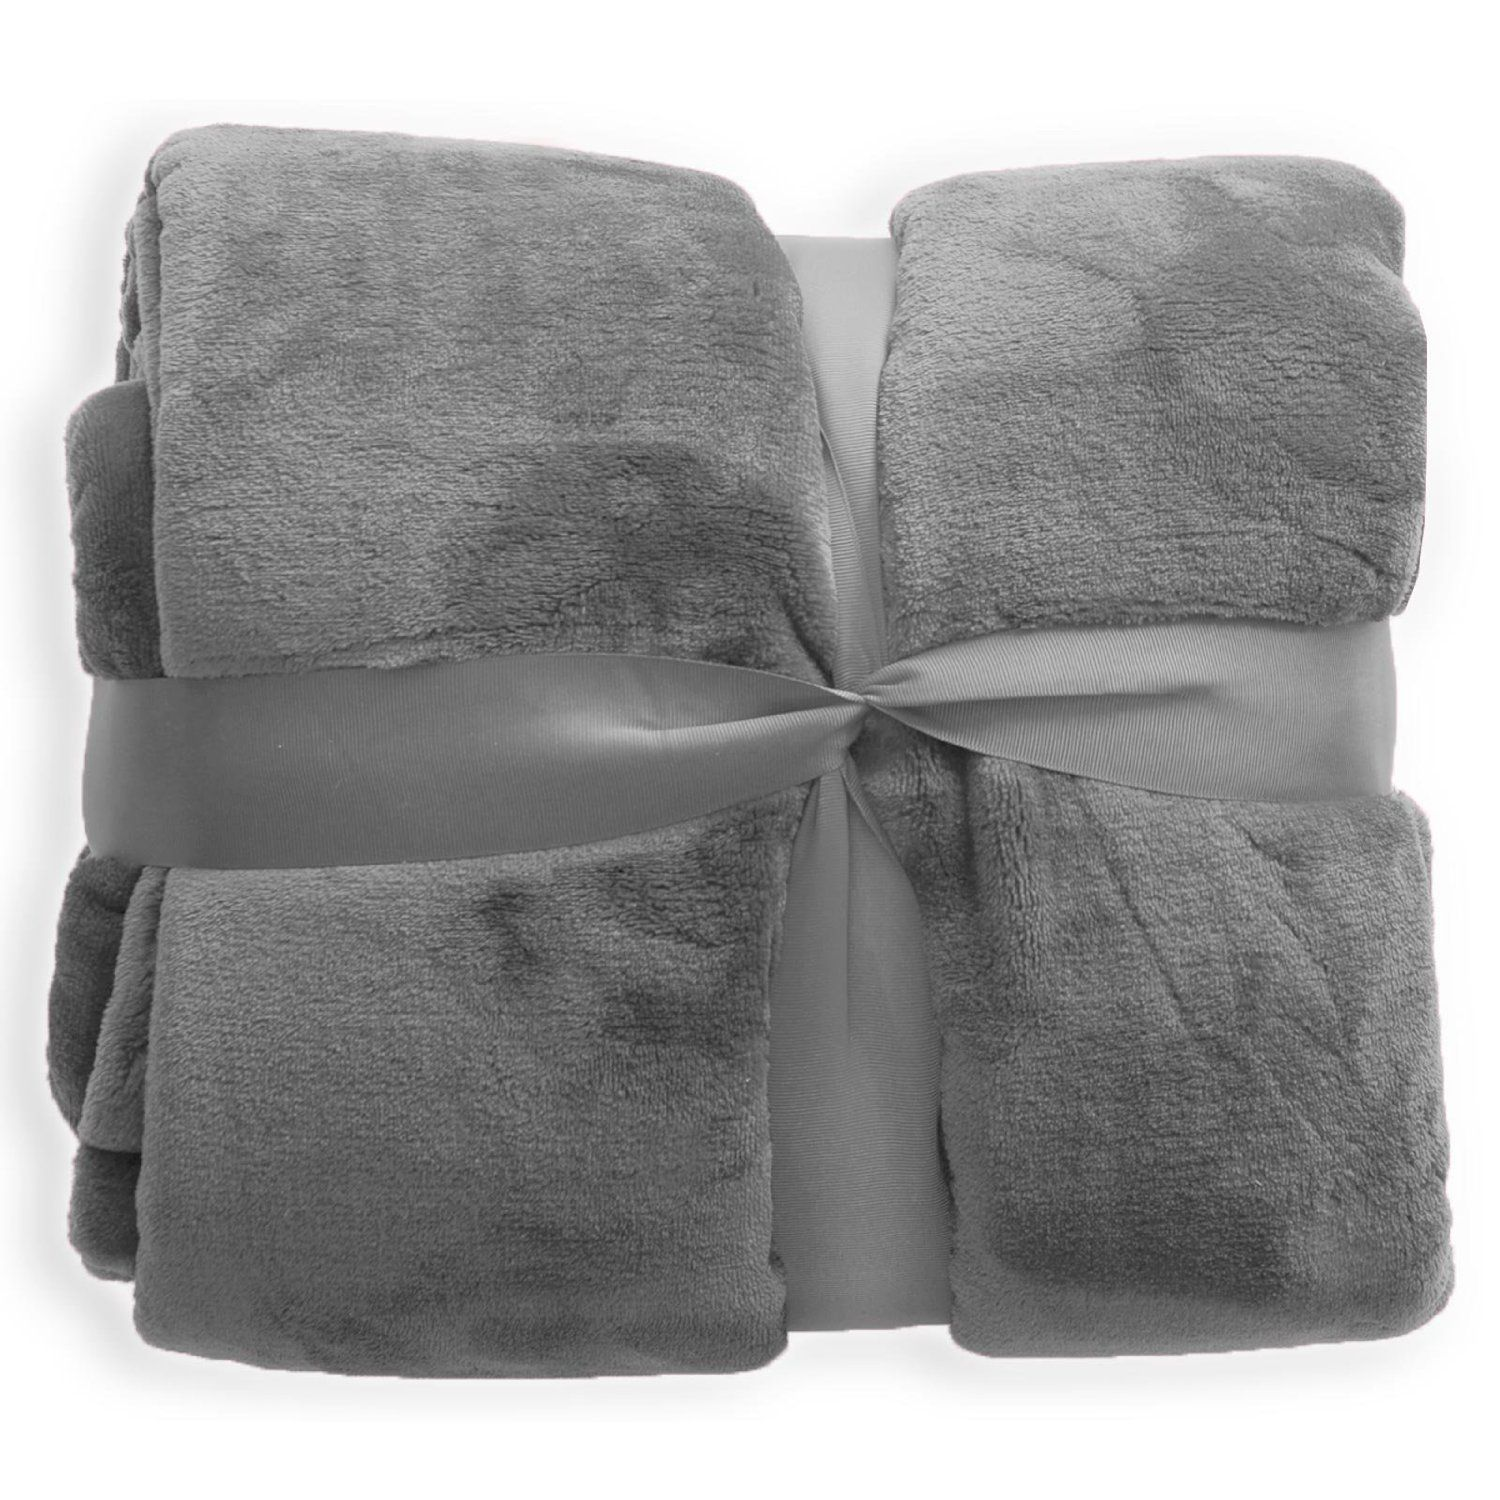 Casa Pura Mink Faux Fur Throw Grey 200 X 220 Cm Extra Large Sofa Bed Blanket 2 Sizes Available Co Uk Kitchen Home